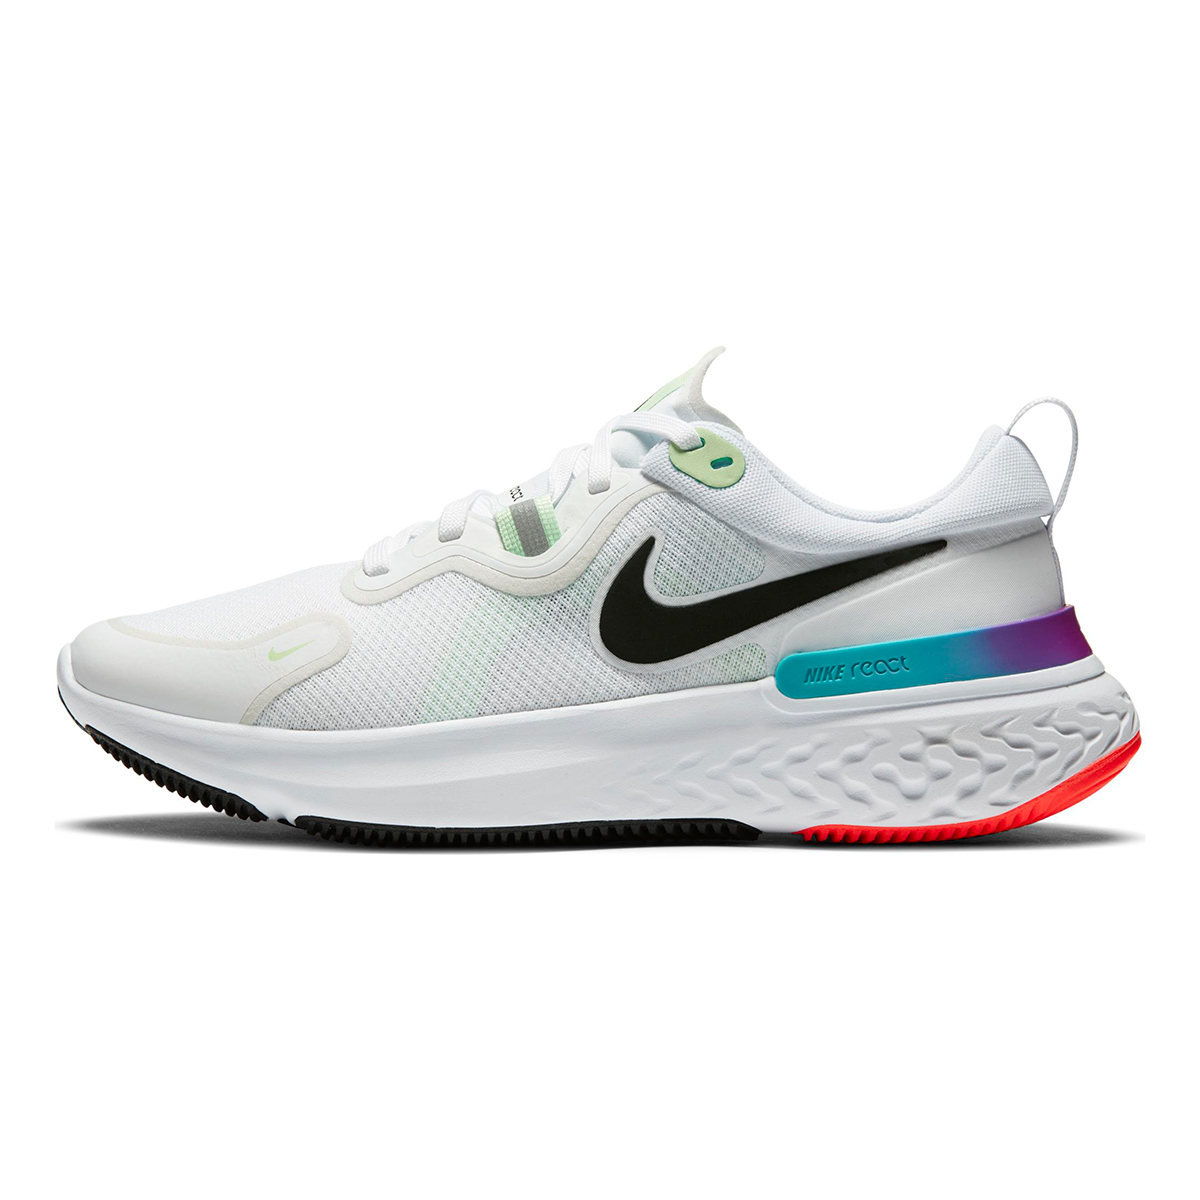 Women's Nike React Miler Running Shoe - Color: White/Vapor Green/Hyper Jade/Black - Size: 5 - Width: Regular, White/Vapor Green/Hyper Jade/Black, large, image 2